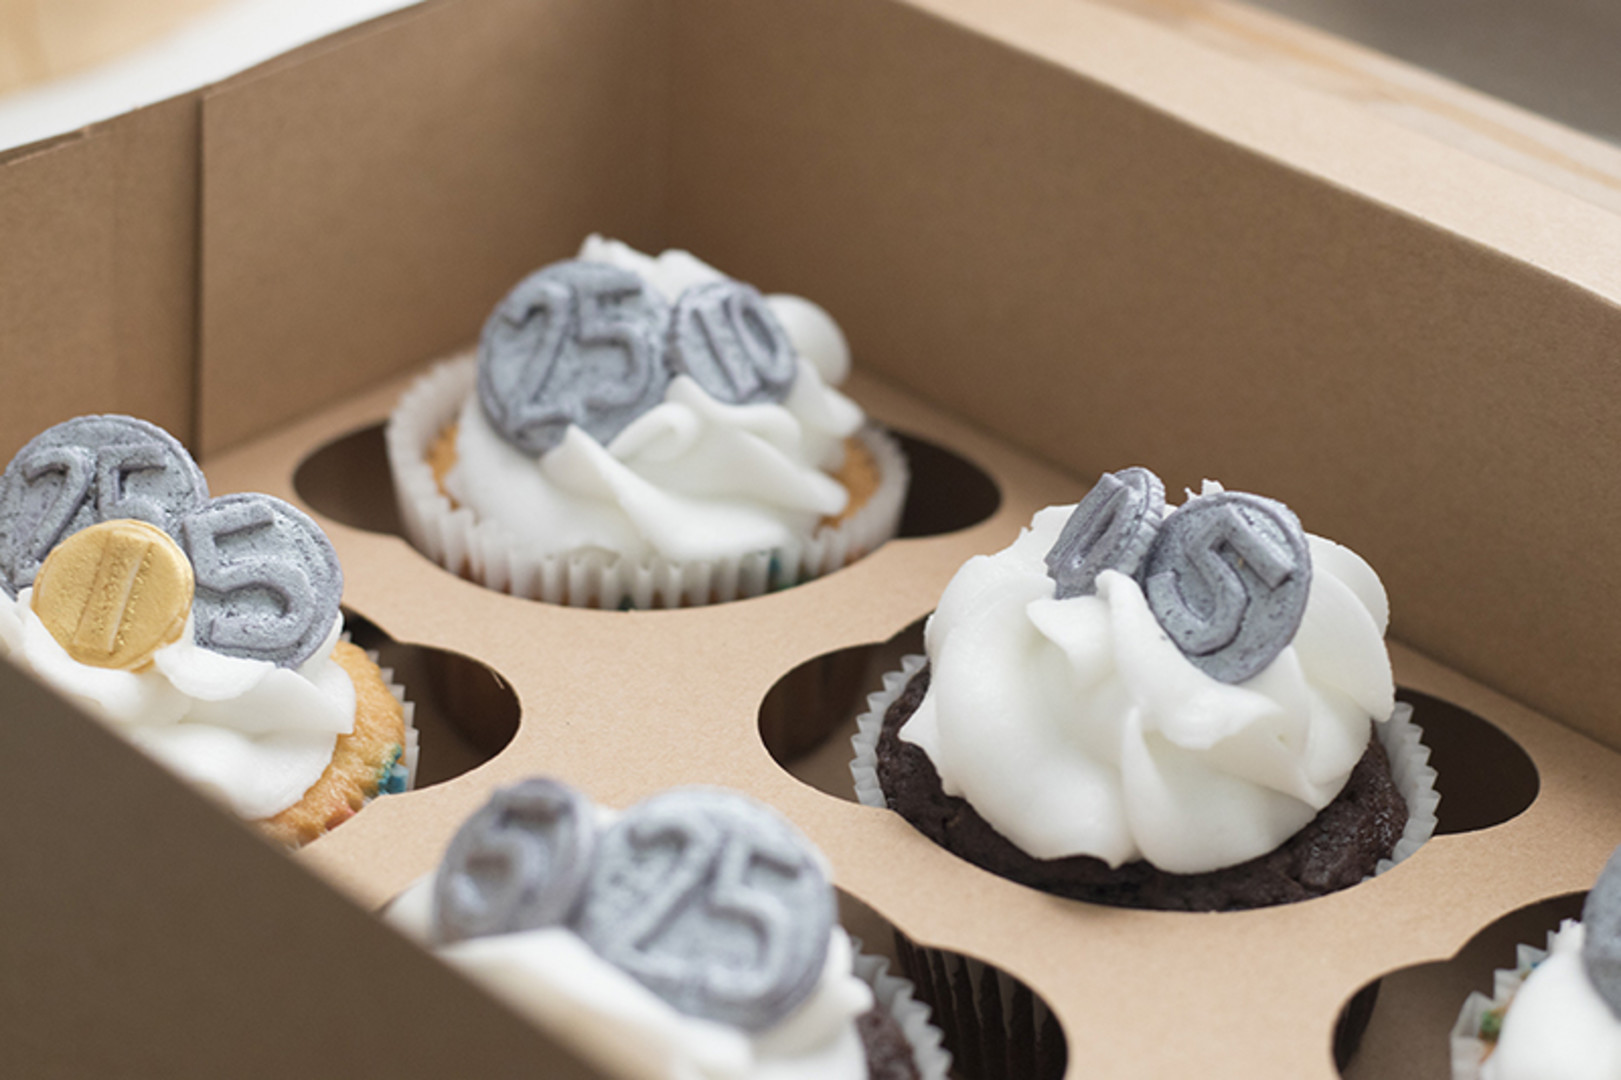 cupcakes with coins on top for grocery store birthday party